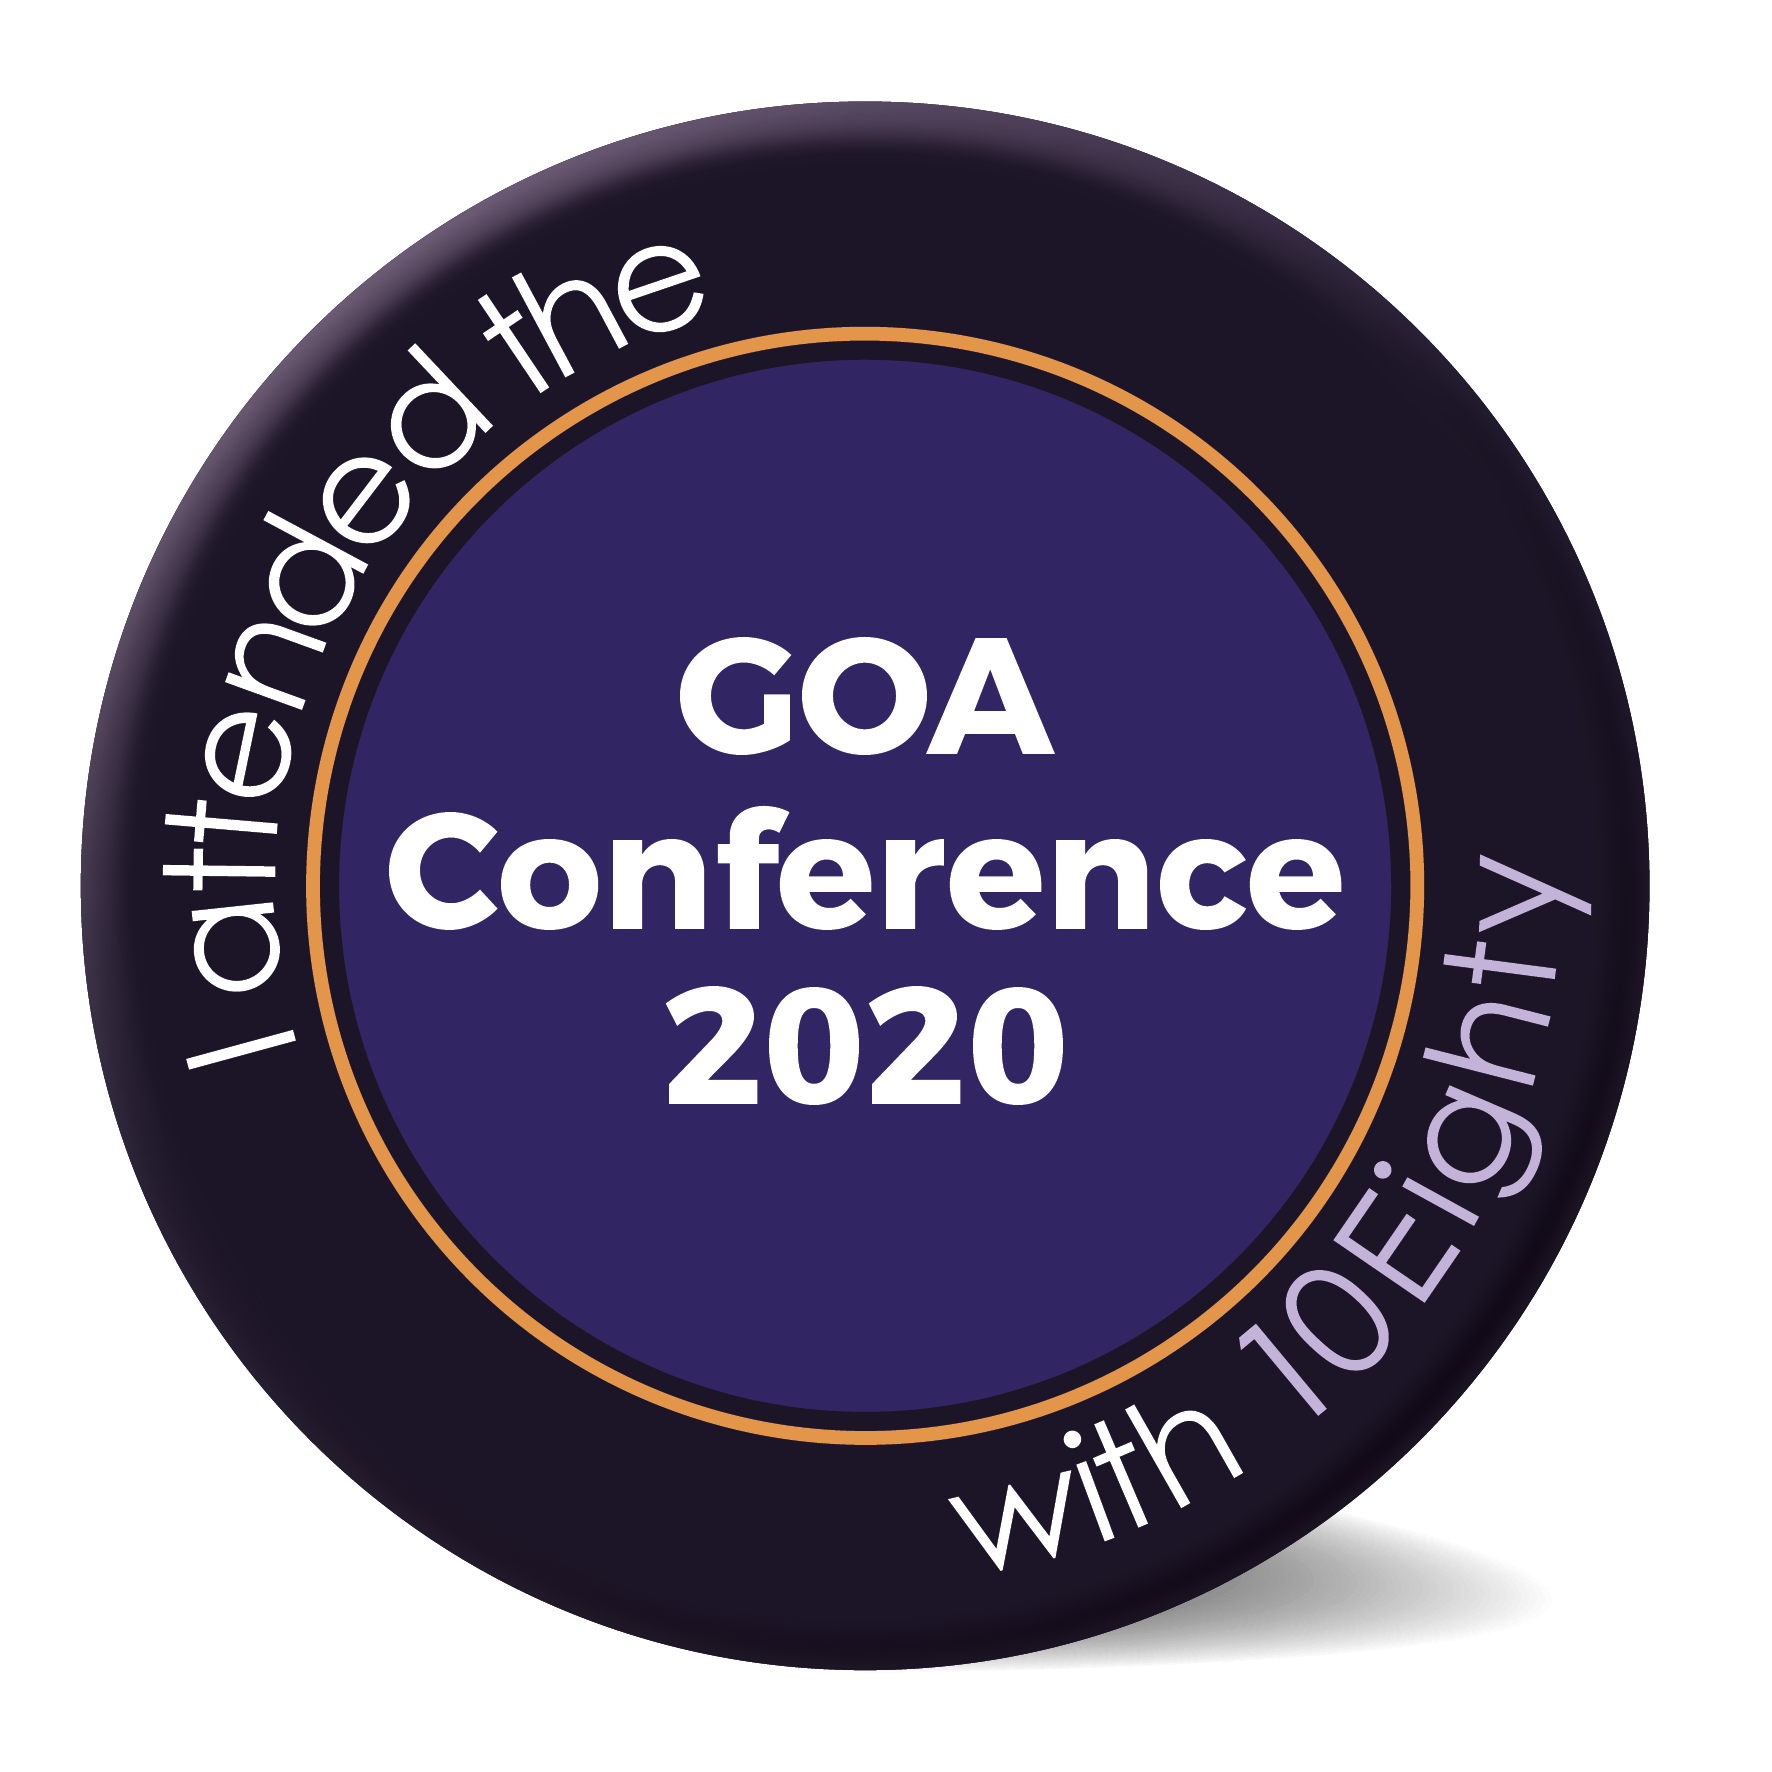 I attended the GOA Conference 2020 Badge